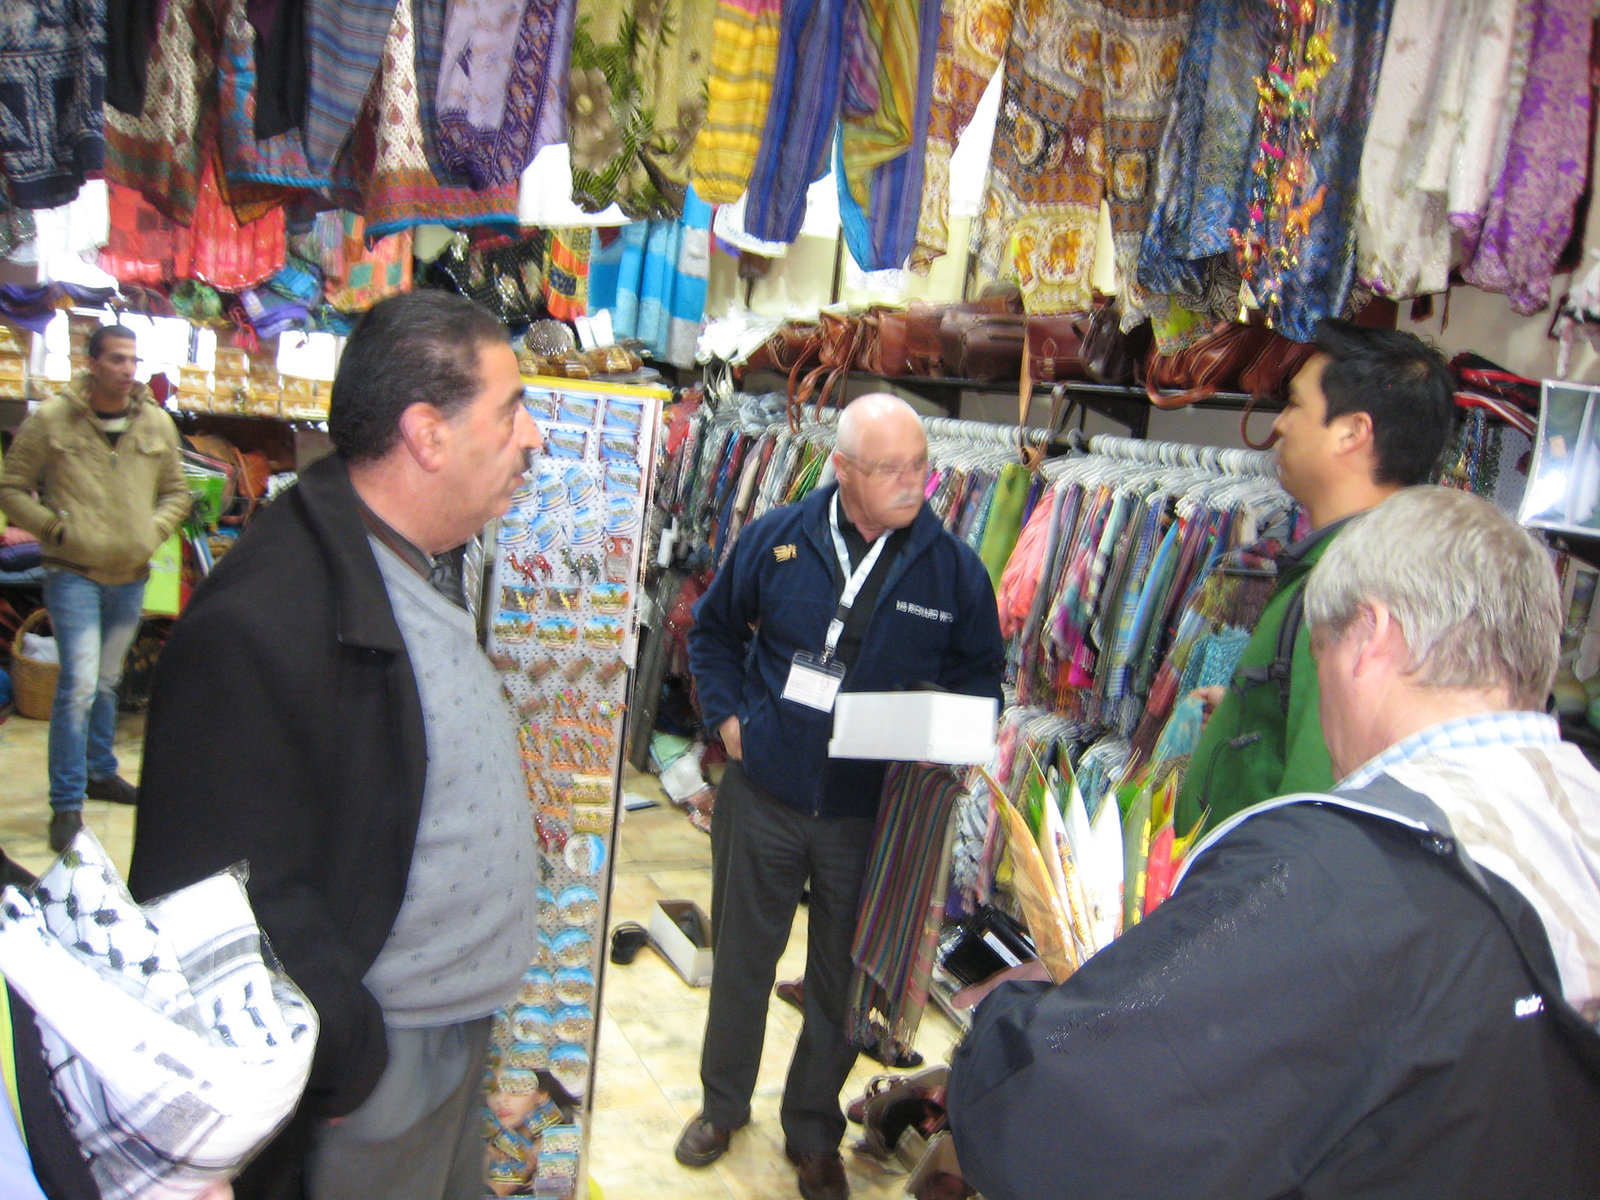 Muslim shop owner who helped us out.